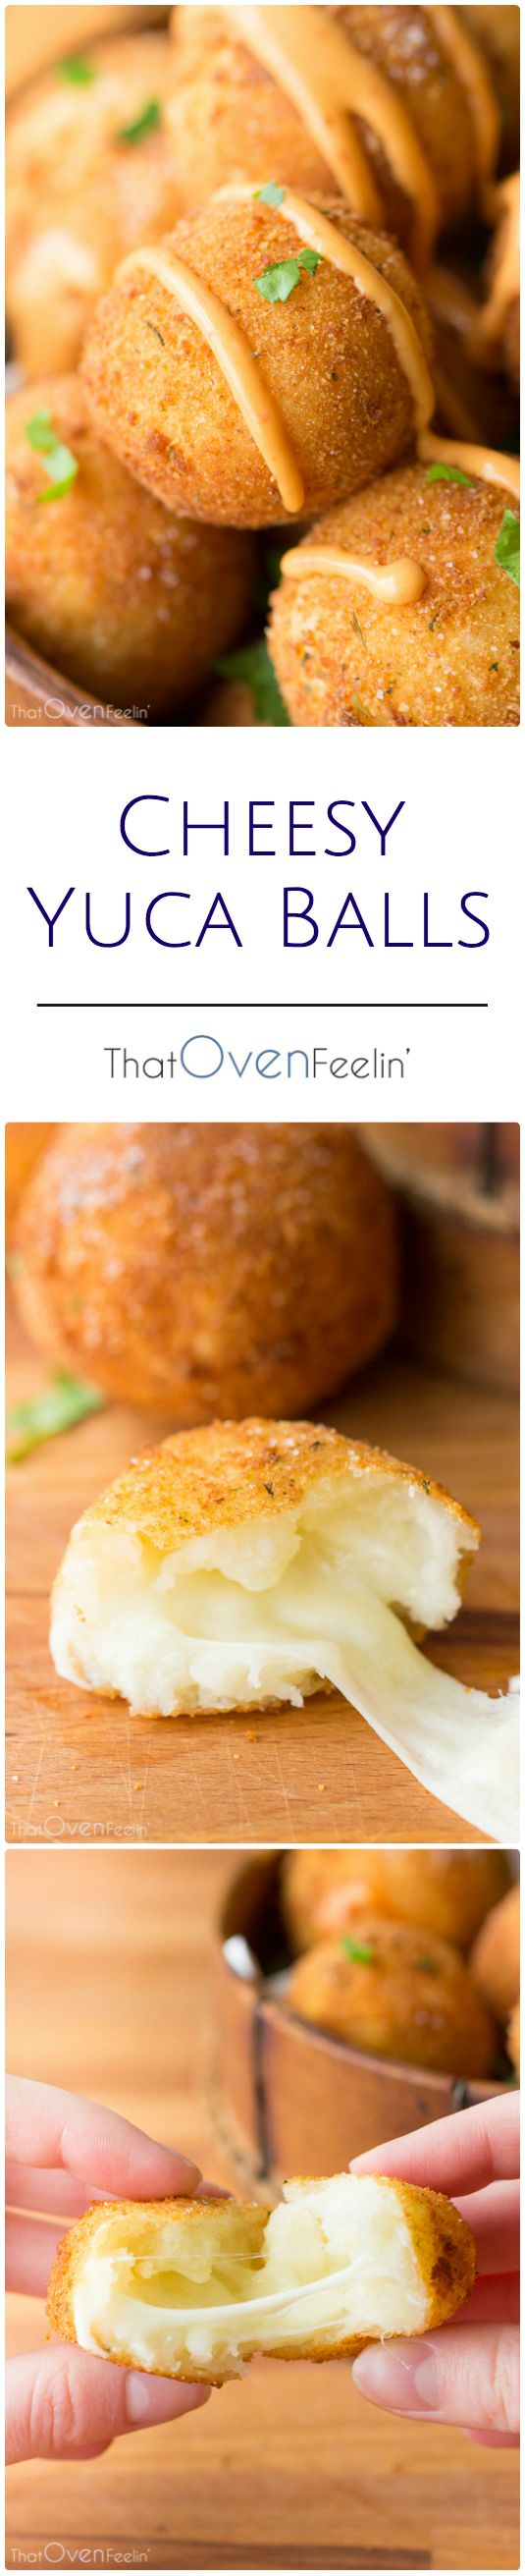 OMGoodness i so need this in my life!!! Cheesy Yuca Balls with a Chipotle Mayo